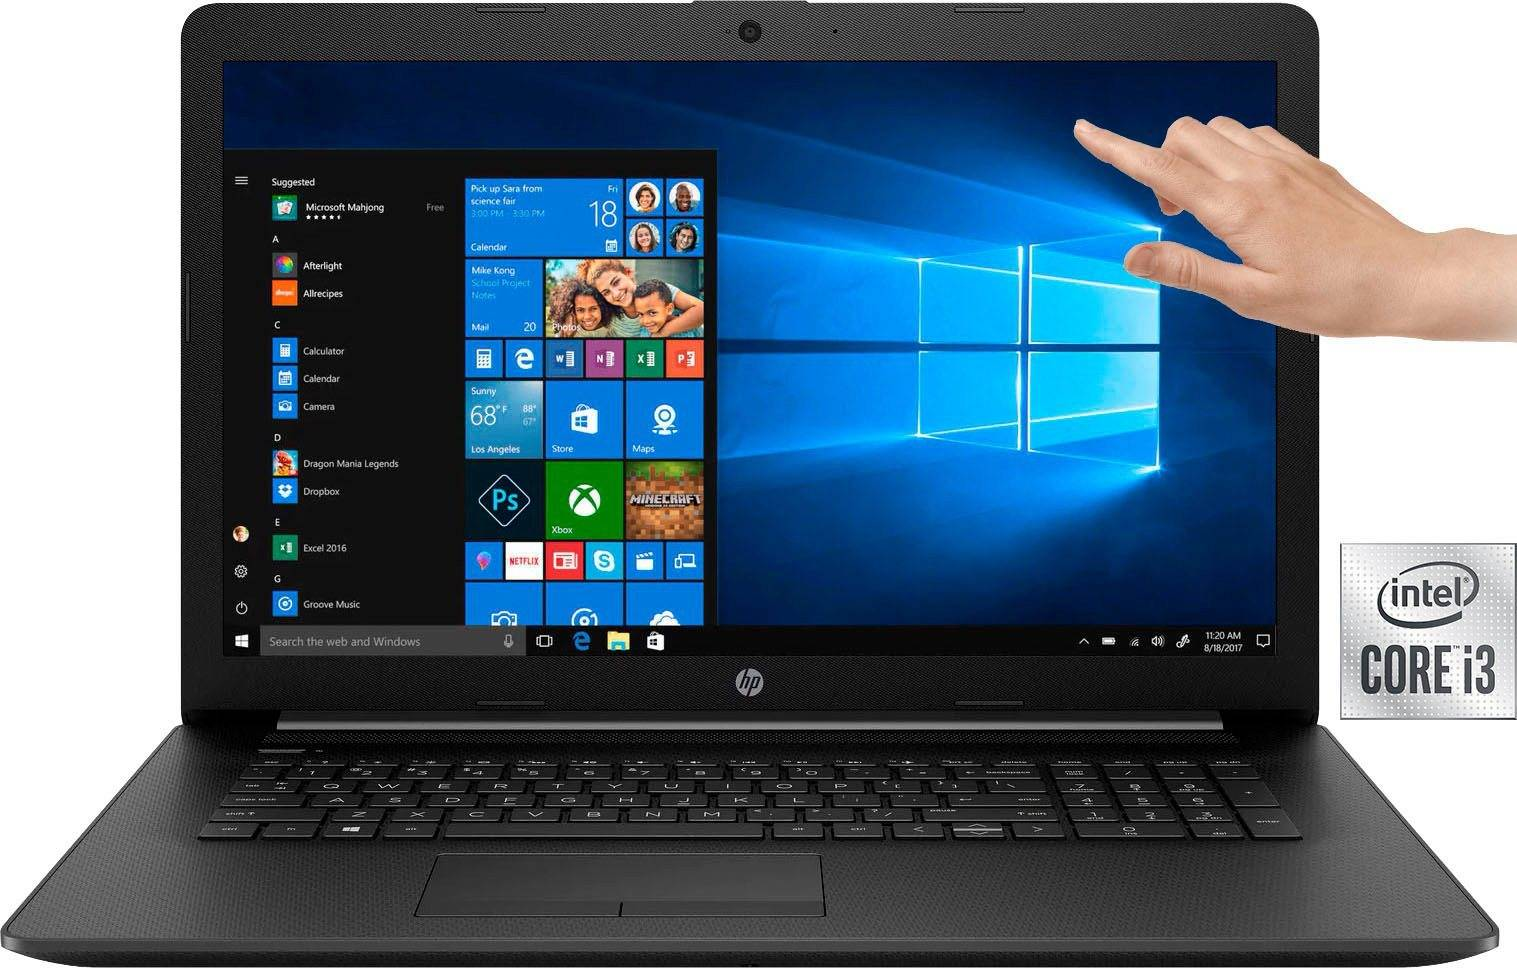 HP 17-by3225ng Notebook (43,9 cm/17,3 Zoll, Intel Core i3, UHD Graphics, - GB HDD, 512 GB SSD, inkl. Office-Anwendersoftware Microsoft 365 Single im Wert von 69 Euro)